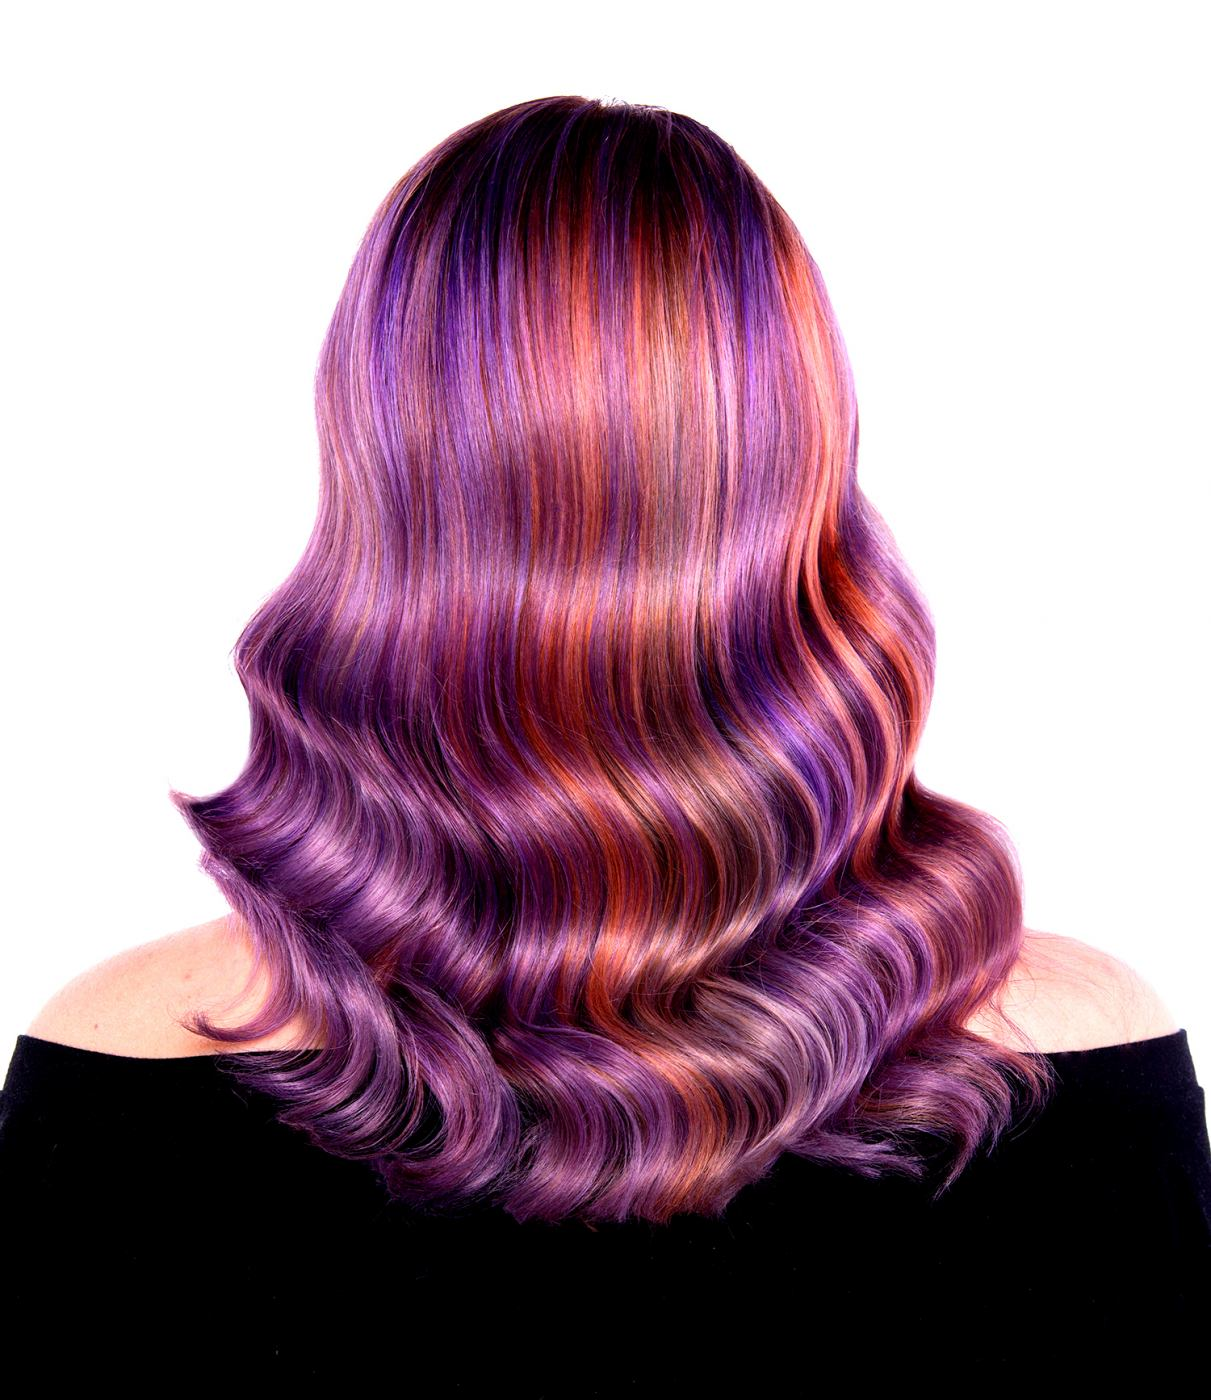 How Easy Is It To Change Your Hair Colour?